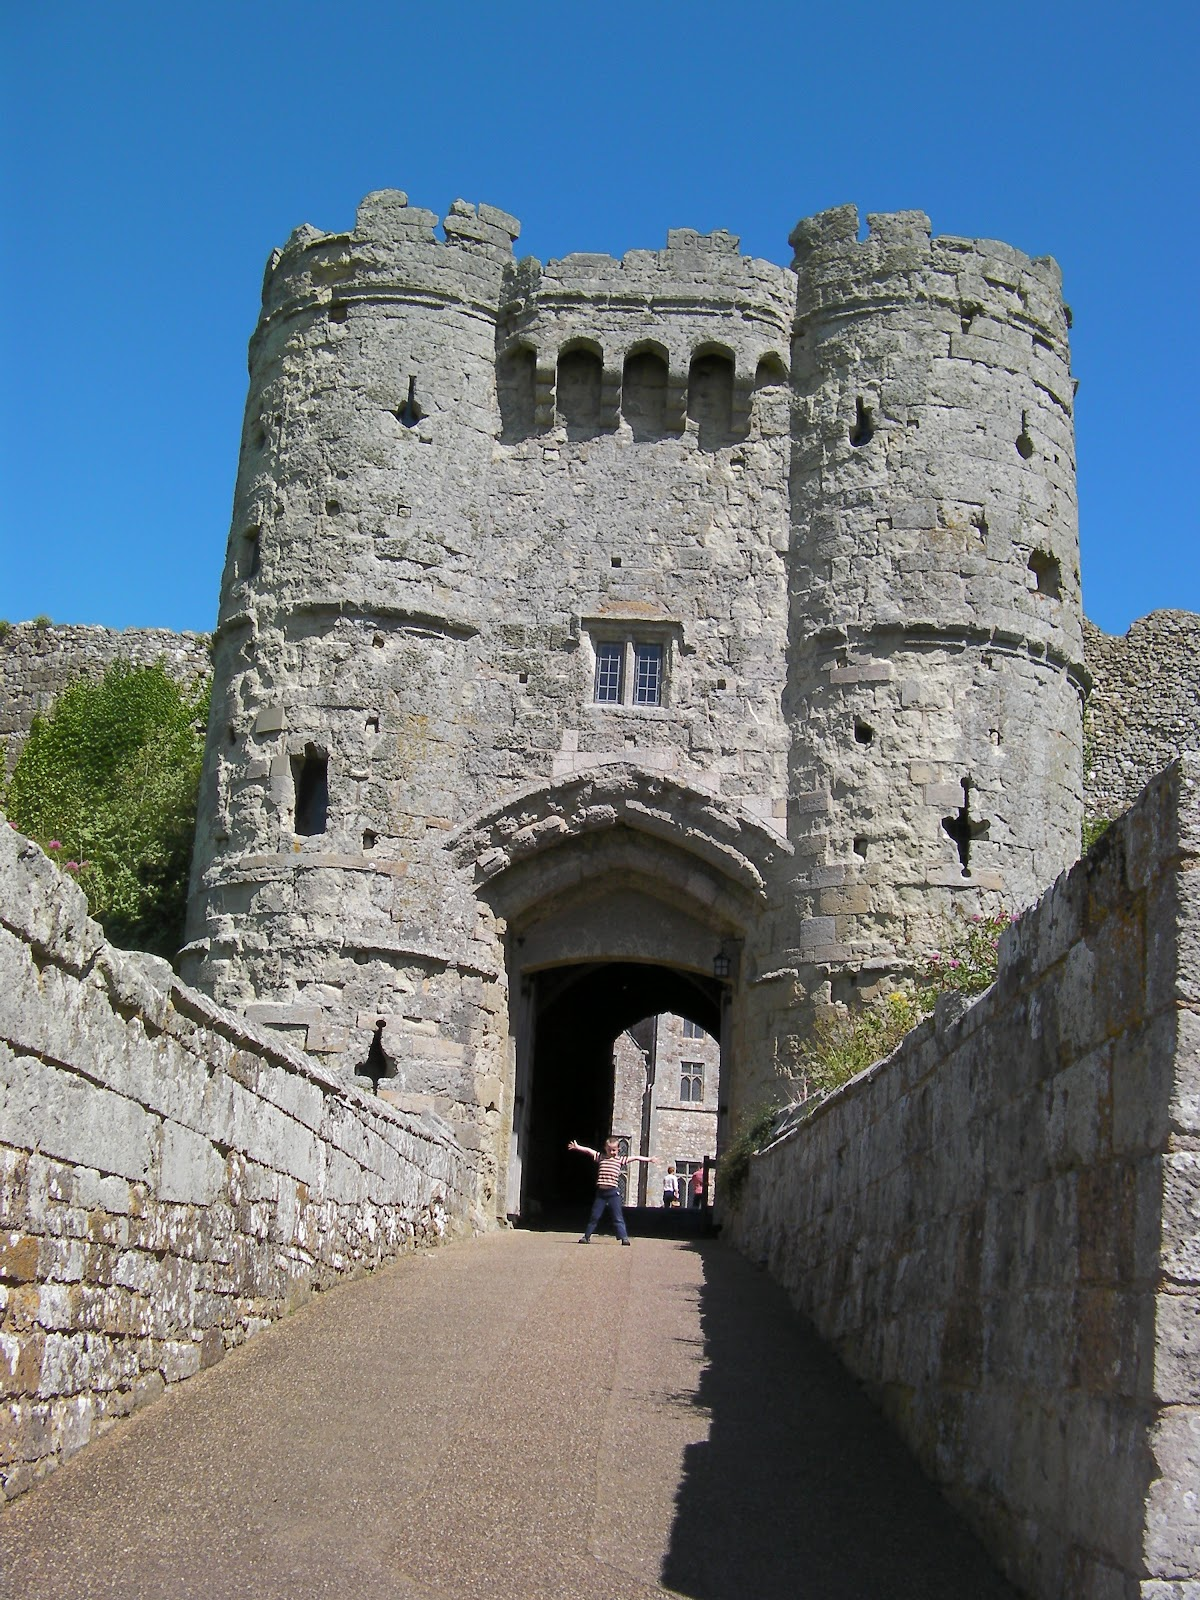 medieval castle walls with portcullis